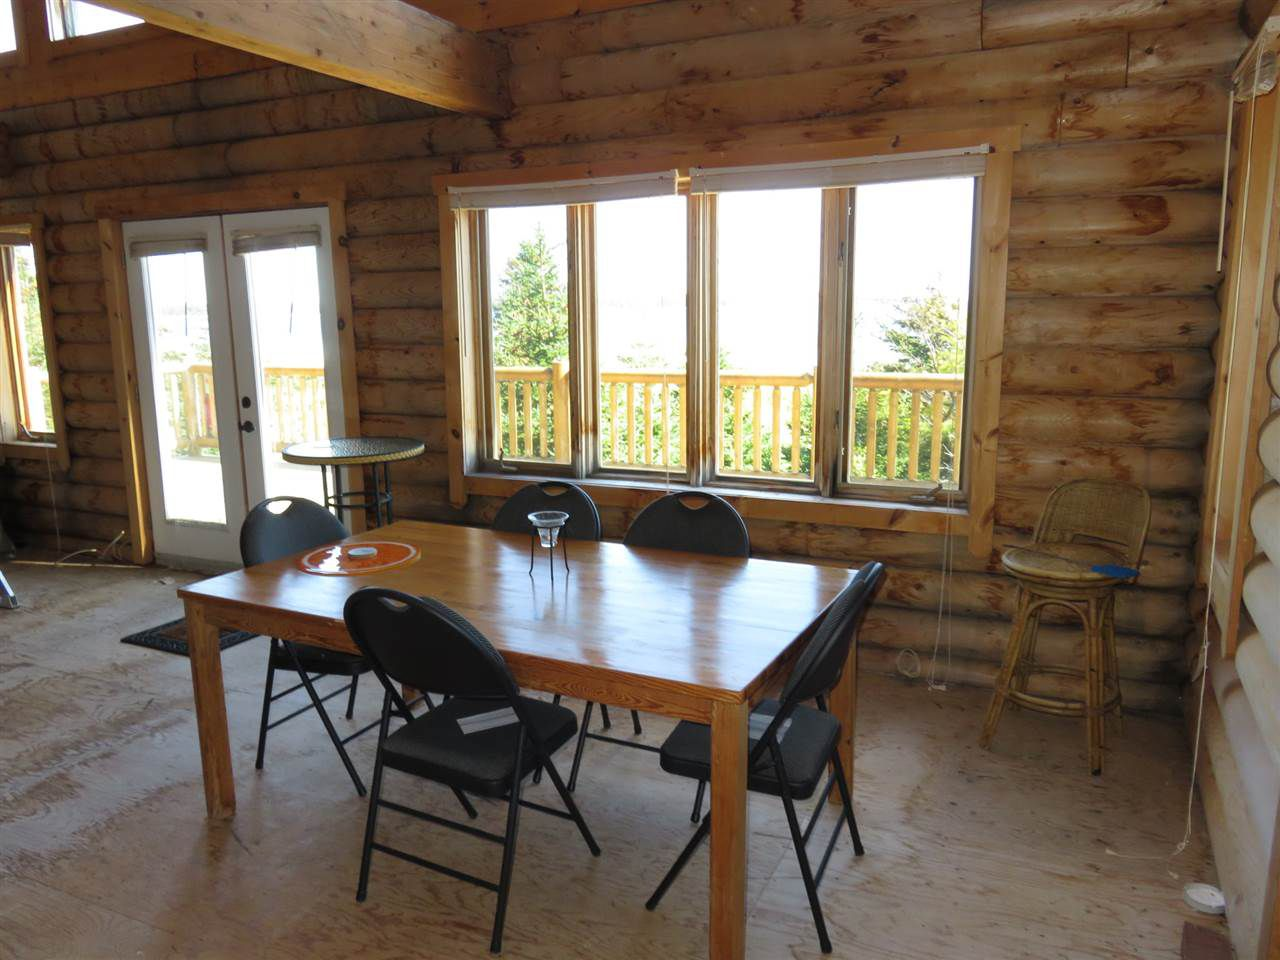 Photo 12: Photos: 198 SEASIDE Drive in Louis Head: 407-Shelburne County Residential for sale (South Shore)  : MLS®# 4686576